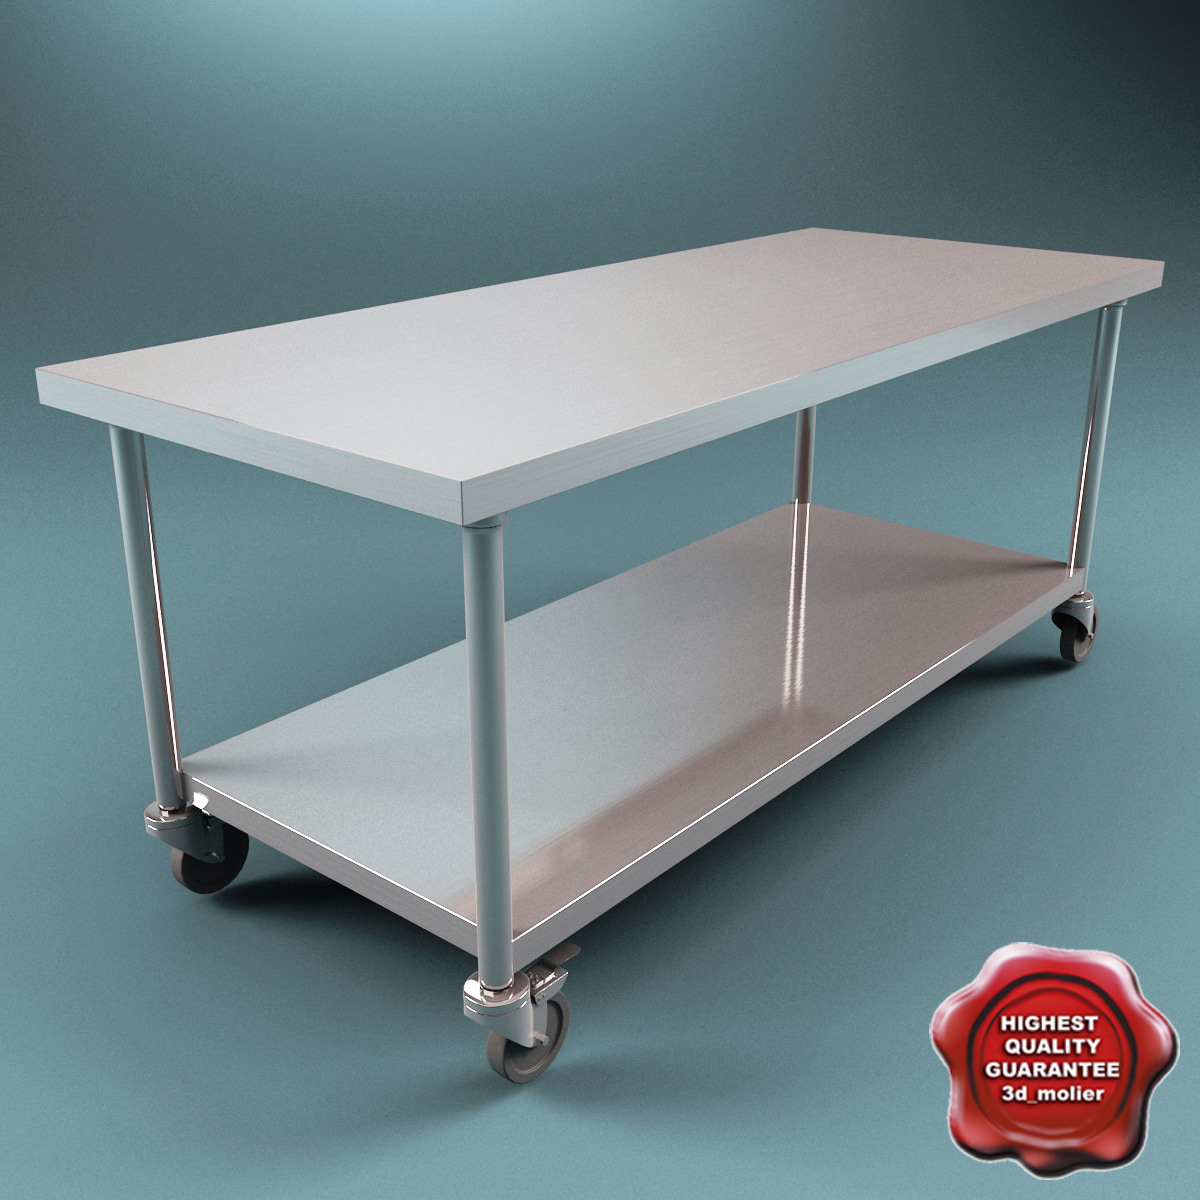 Steel_Movable_Operating_Table_00.jpg